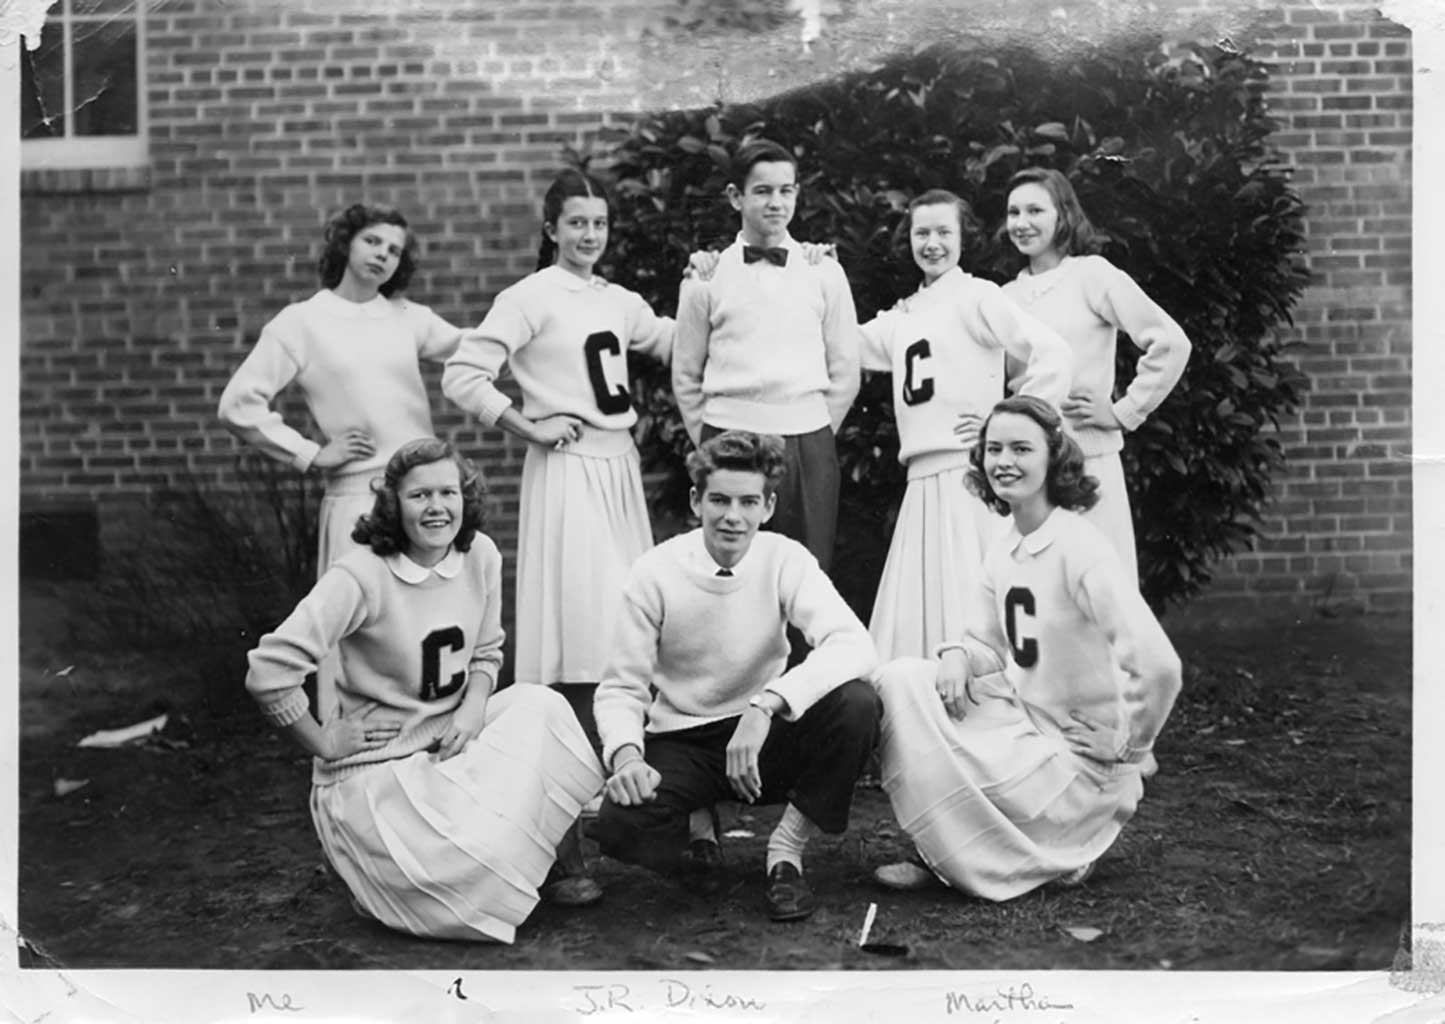 chcuckatuck-high-school-cheer-leaders-1949-names-on-file-img869